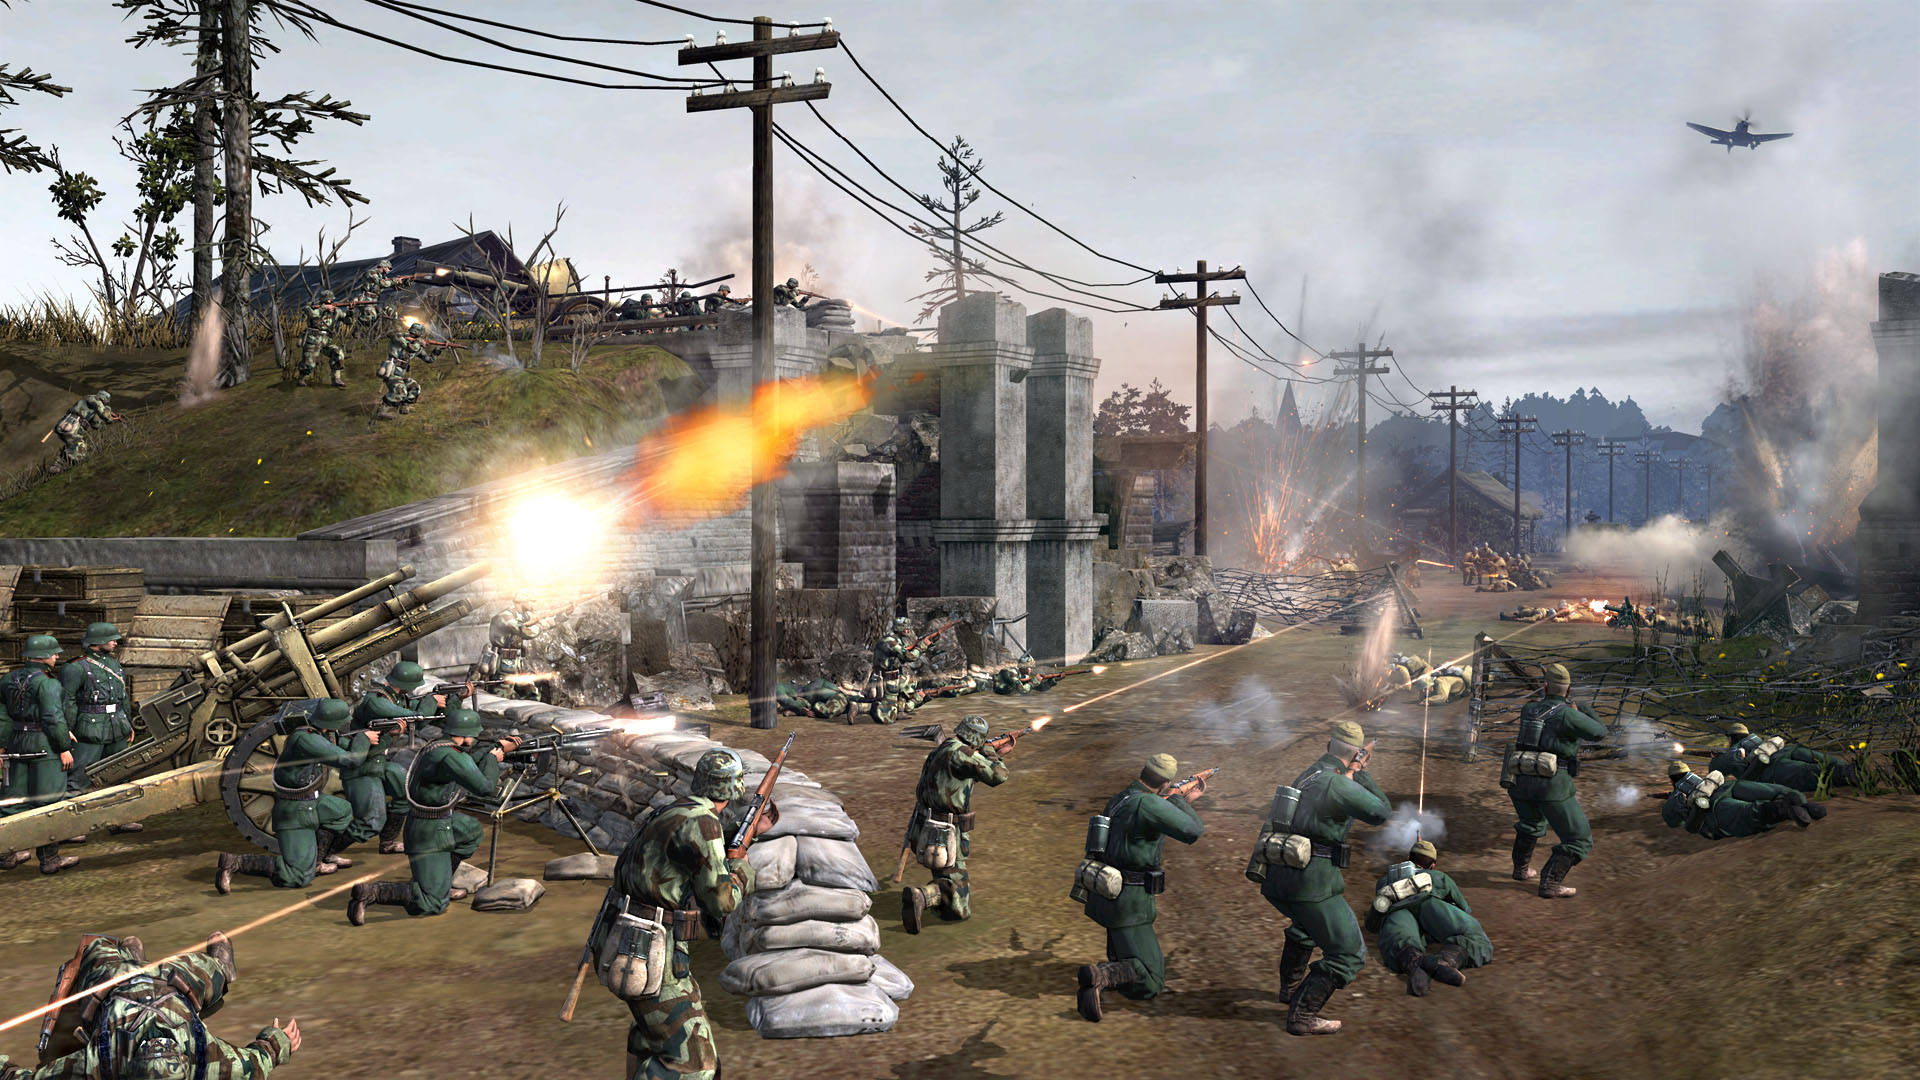 Company Of Heroes 2 Backgrounds on Wallpapers Vista